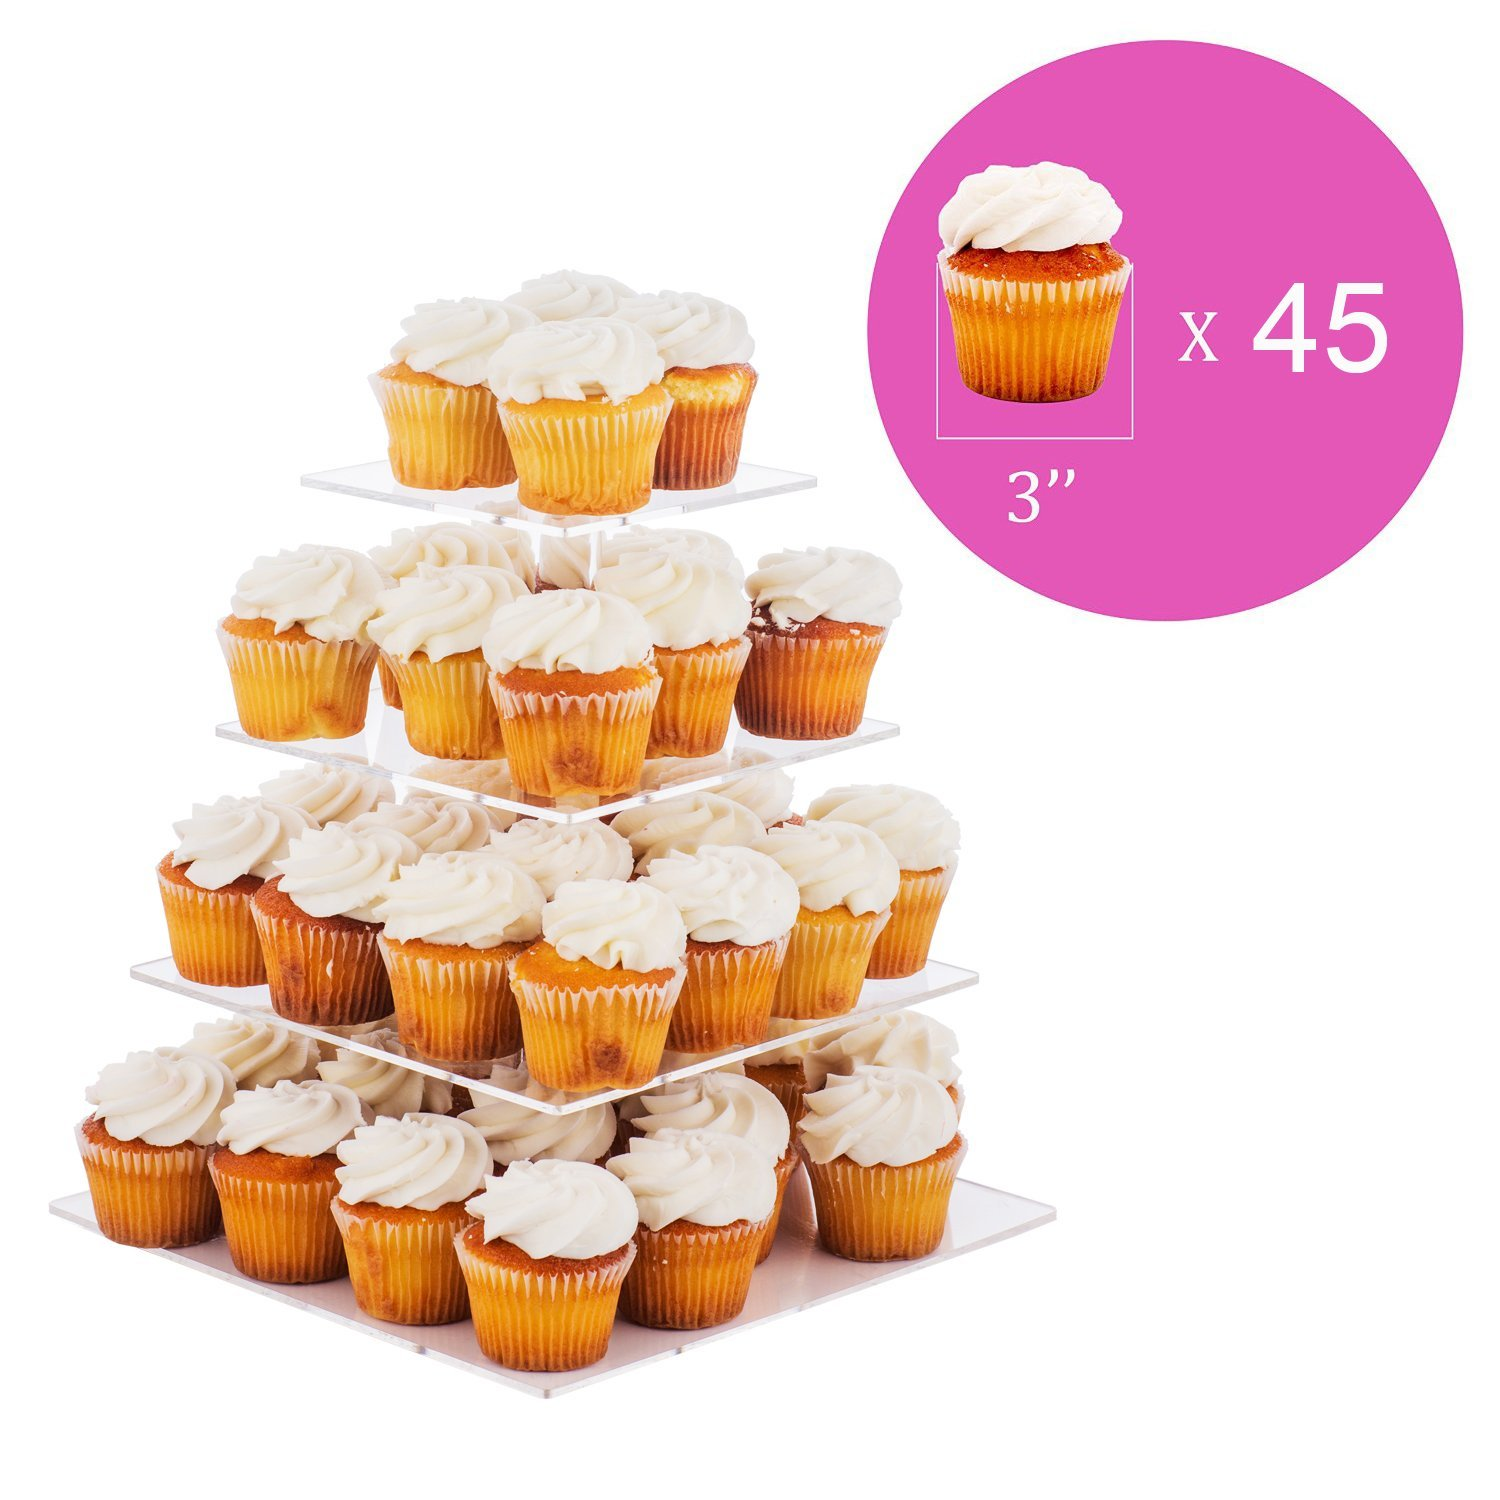 Jusalpha 4 Tier Square Wedding Acrylic Cupcake Tower Stand-Cake Stand-Dessert Stand 4S